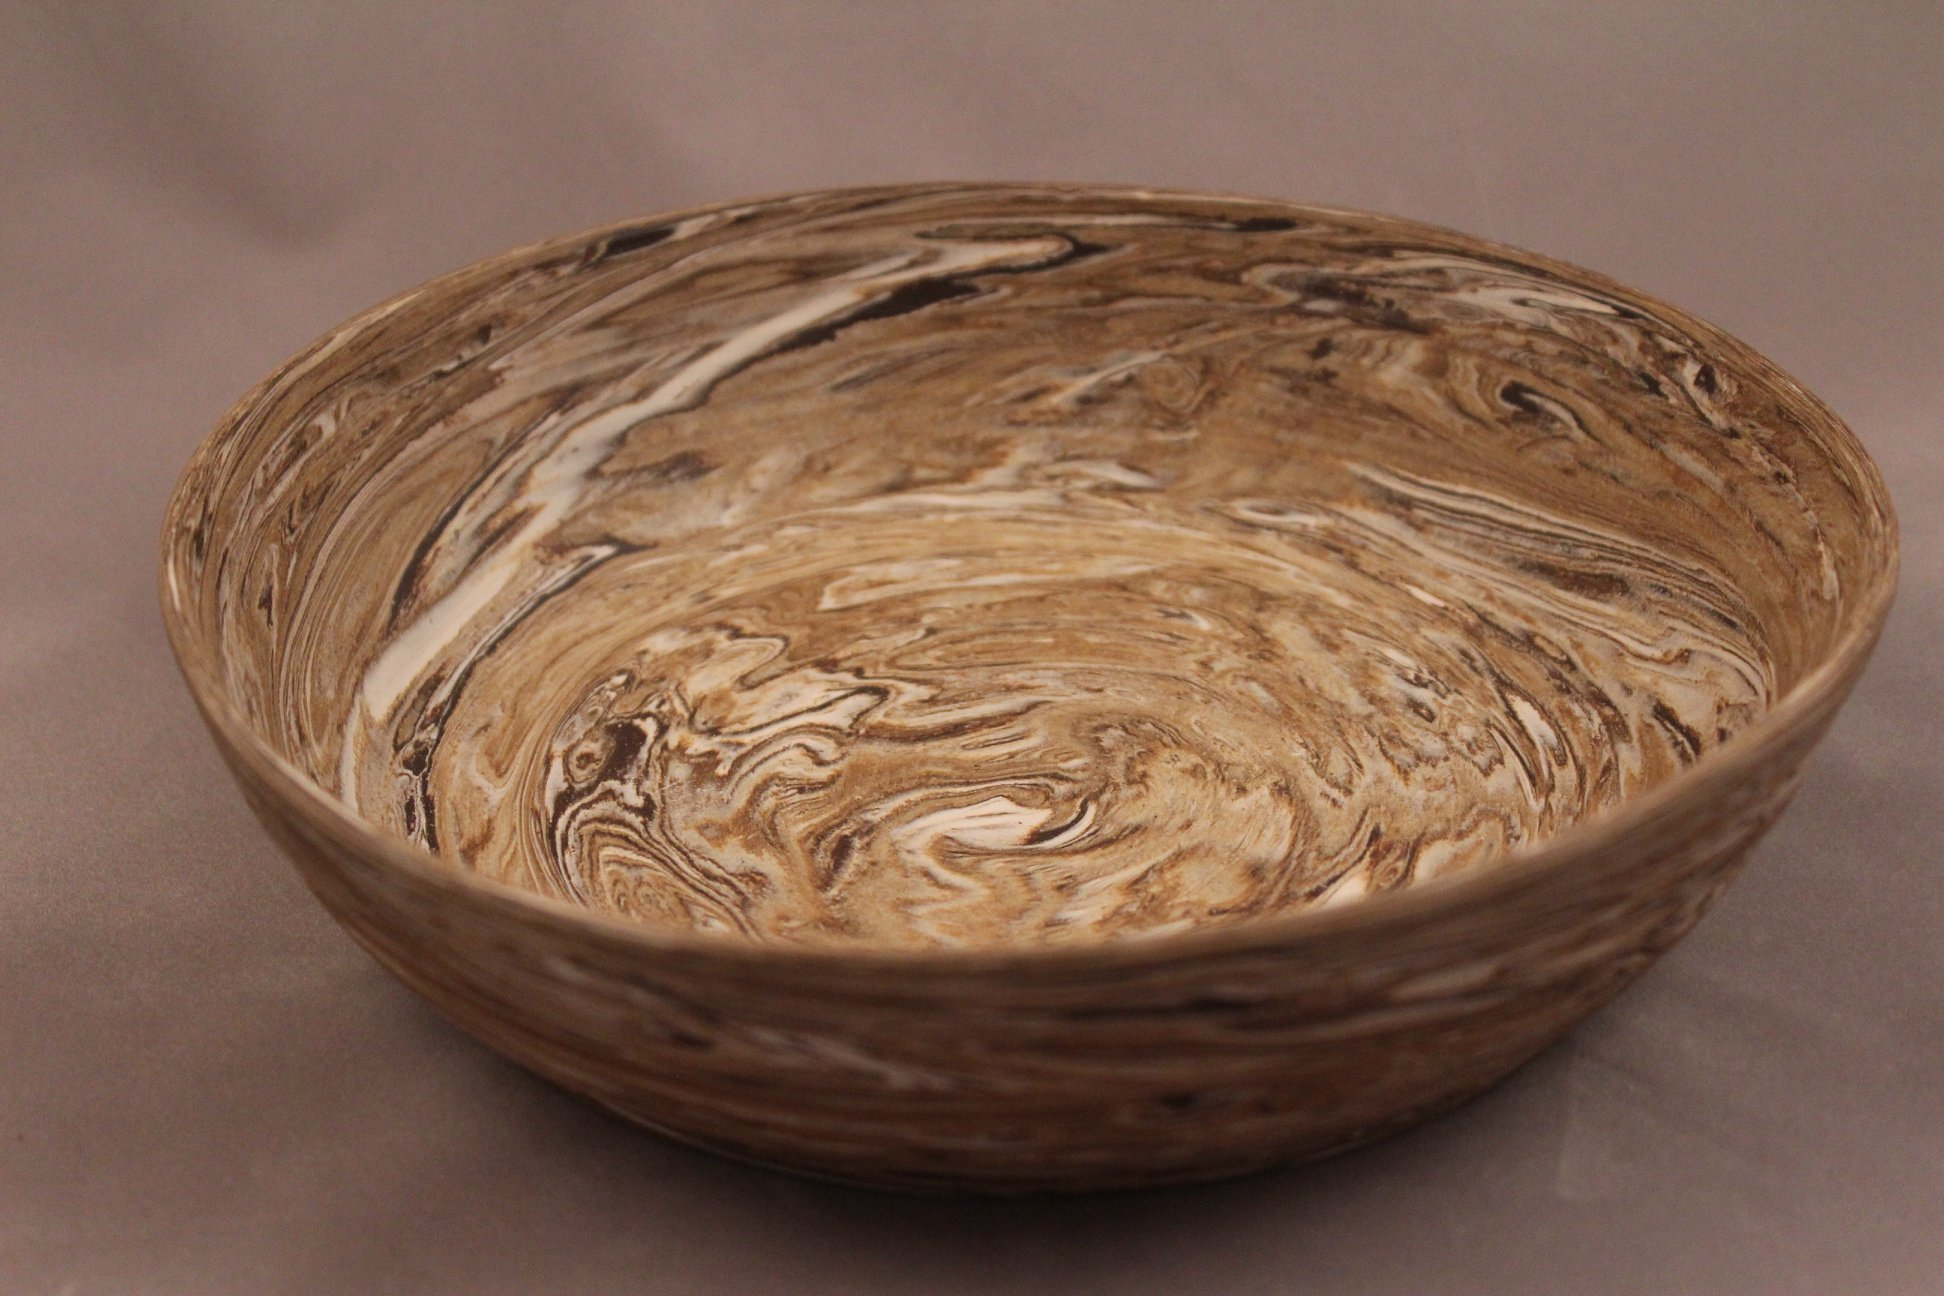 """Marbled Bowl"" Black and porcelain clays, raw finish"